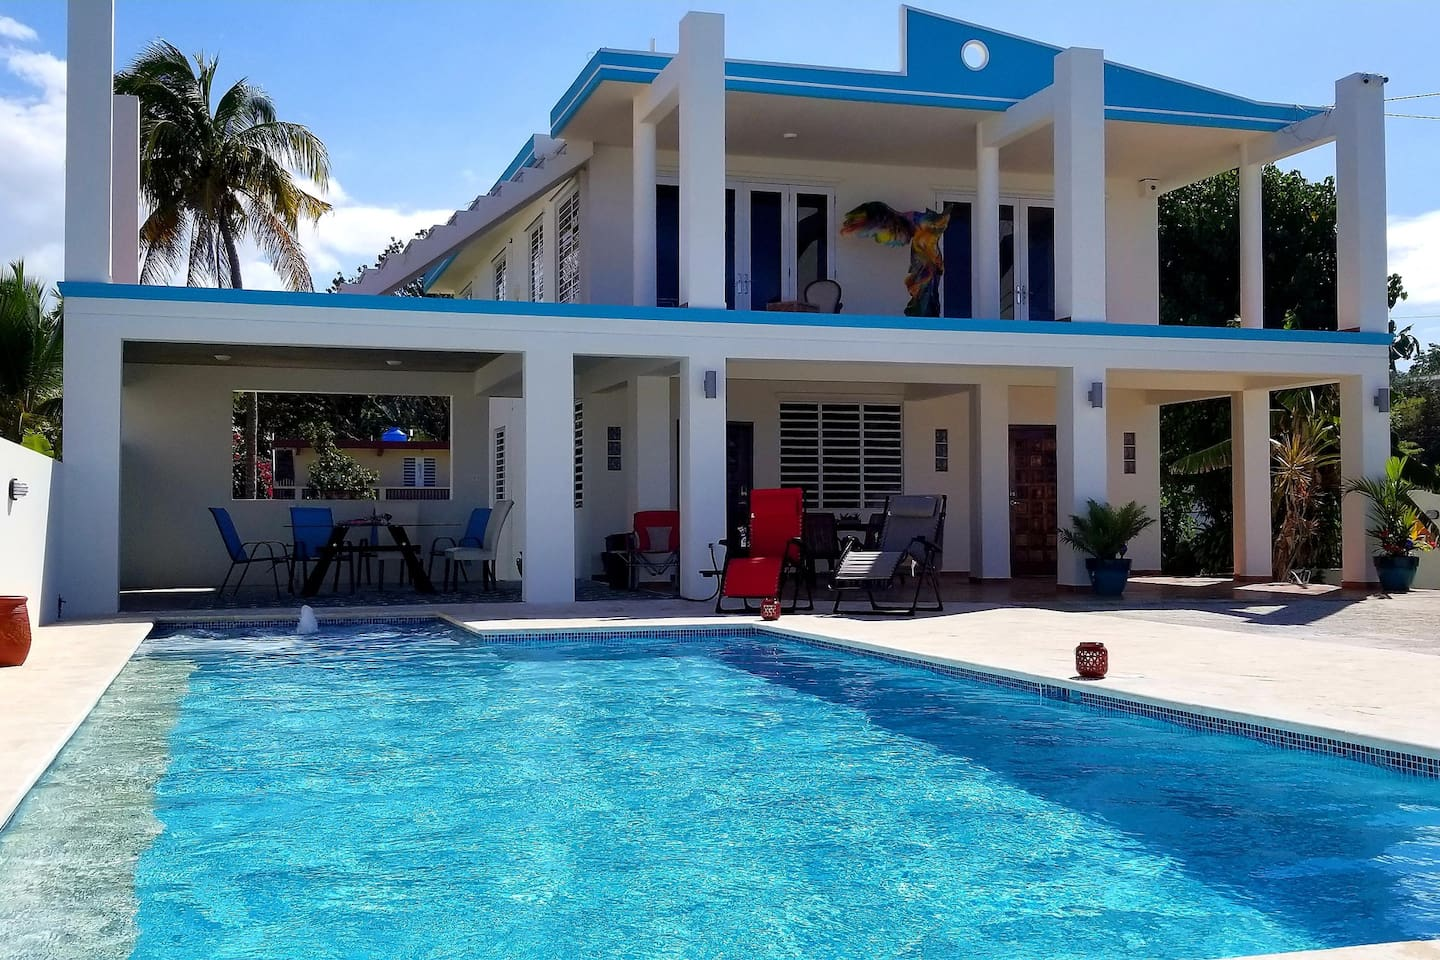 Enjoy the ocean view while relaxing on the ledge of our 30' sparkling clean, custom freshwater pool. Easy to step down. Surrounded by local handcrafted Coralina that's nonslip & never gets hot to the touch.